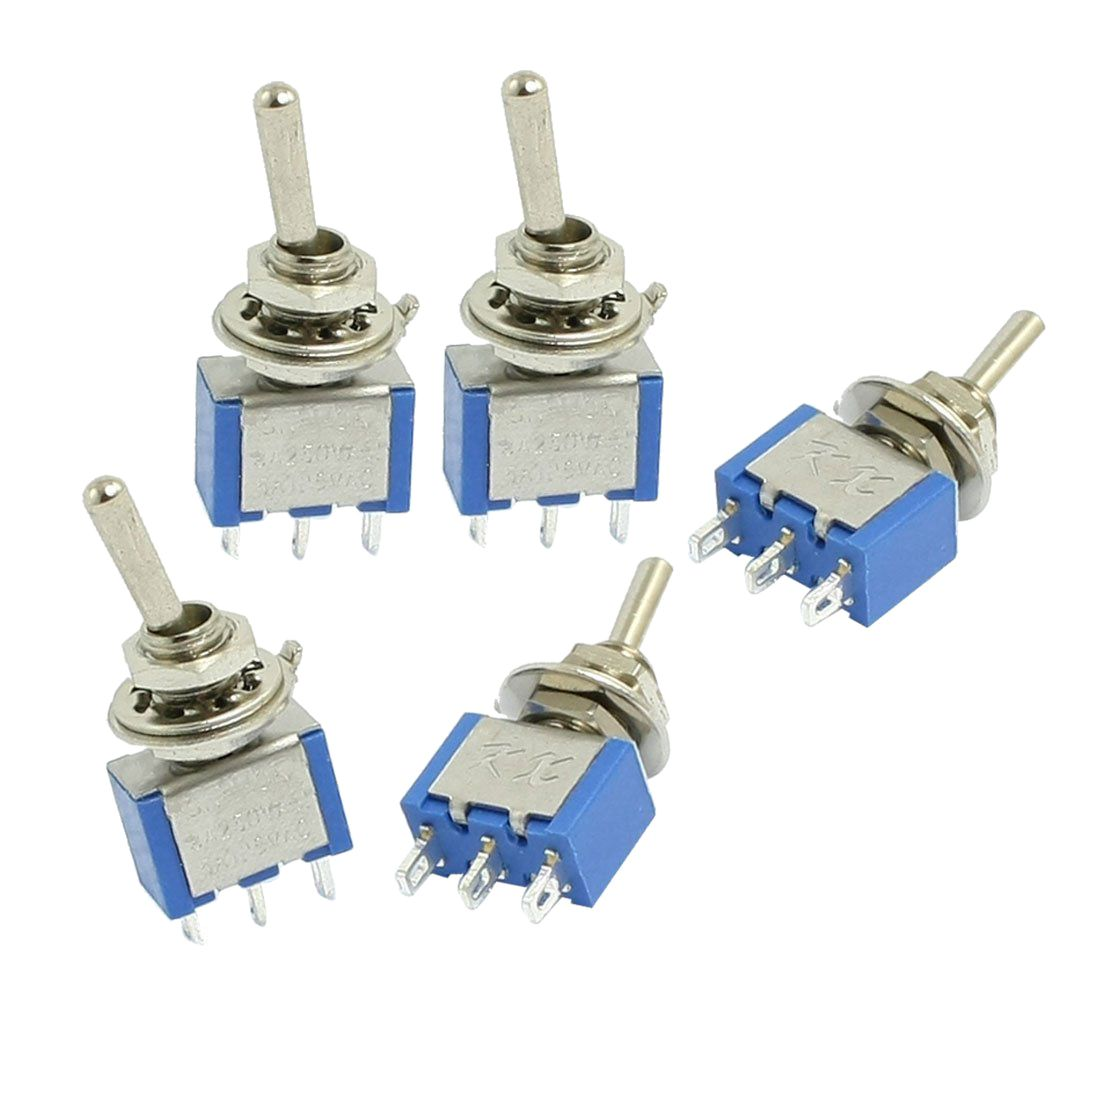 3 Pole Toggle Switch Wiring With Images Toggle Switch Switch